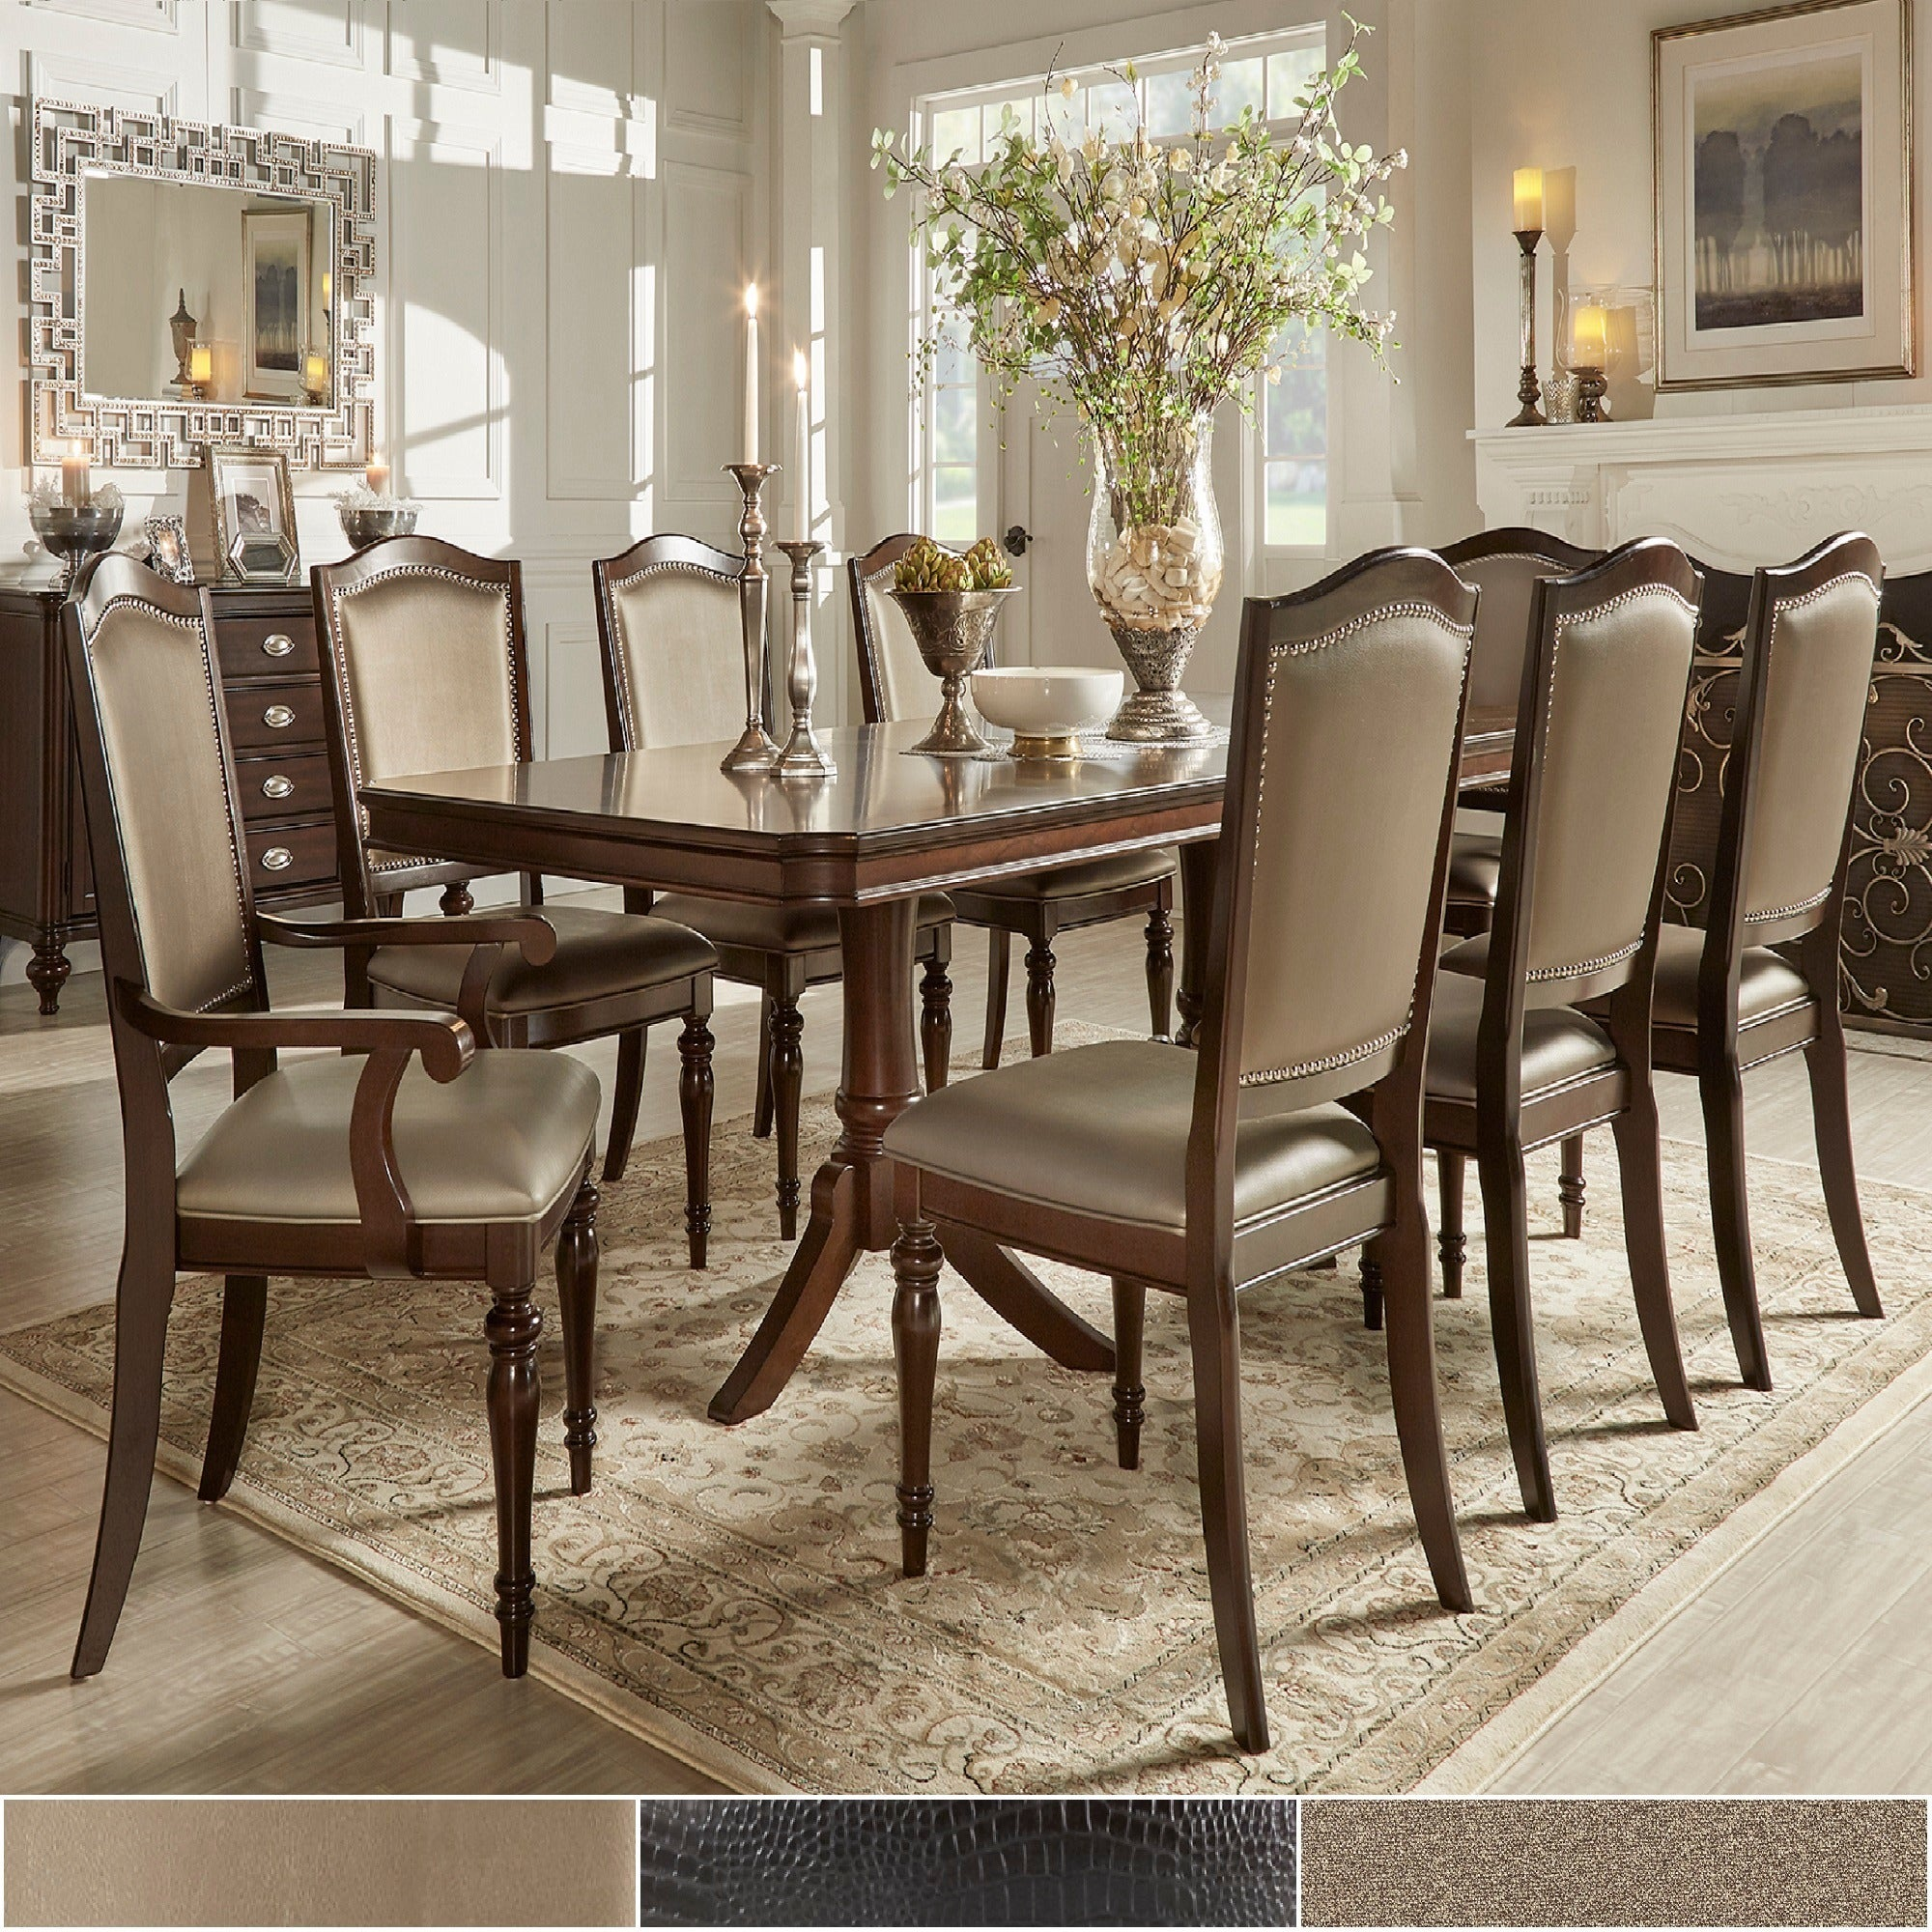 Lasalle Espresso Nail Head Accent Transitional Dining Side Chairs Set Of 2 By Inspire Q Classic Overstock 8753790